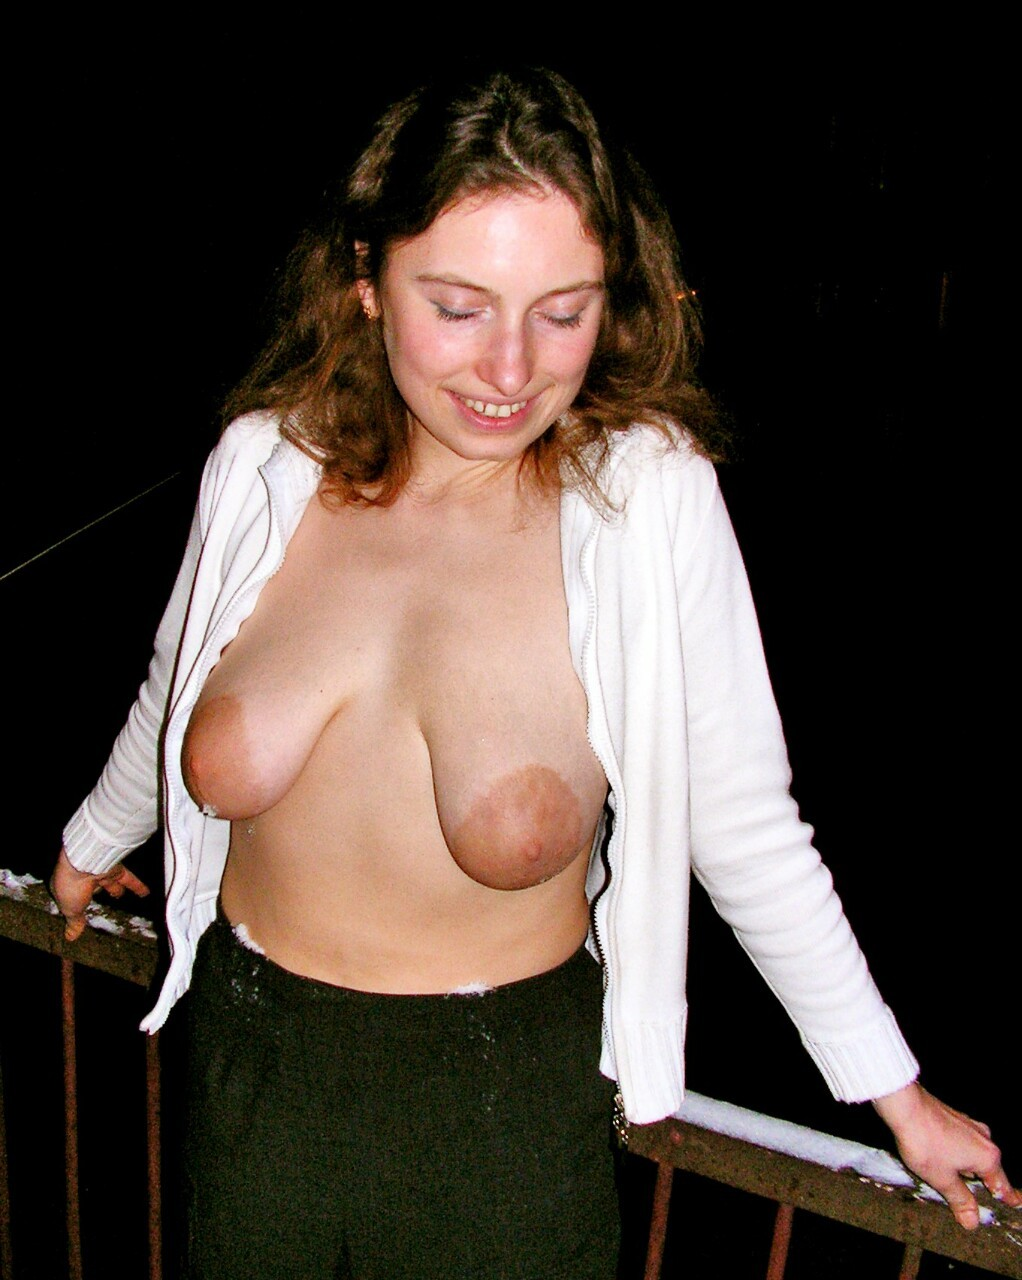 droopy breasts amateur